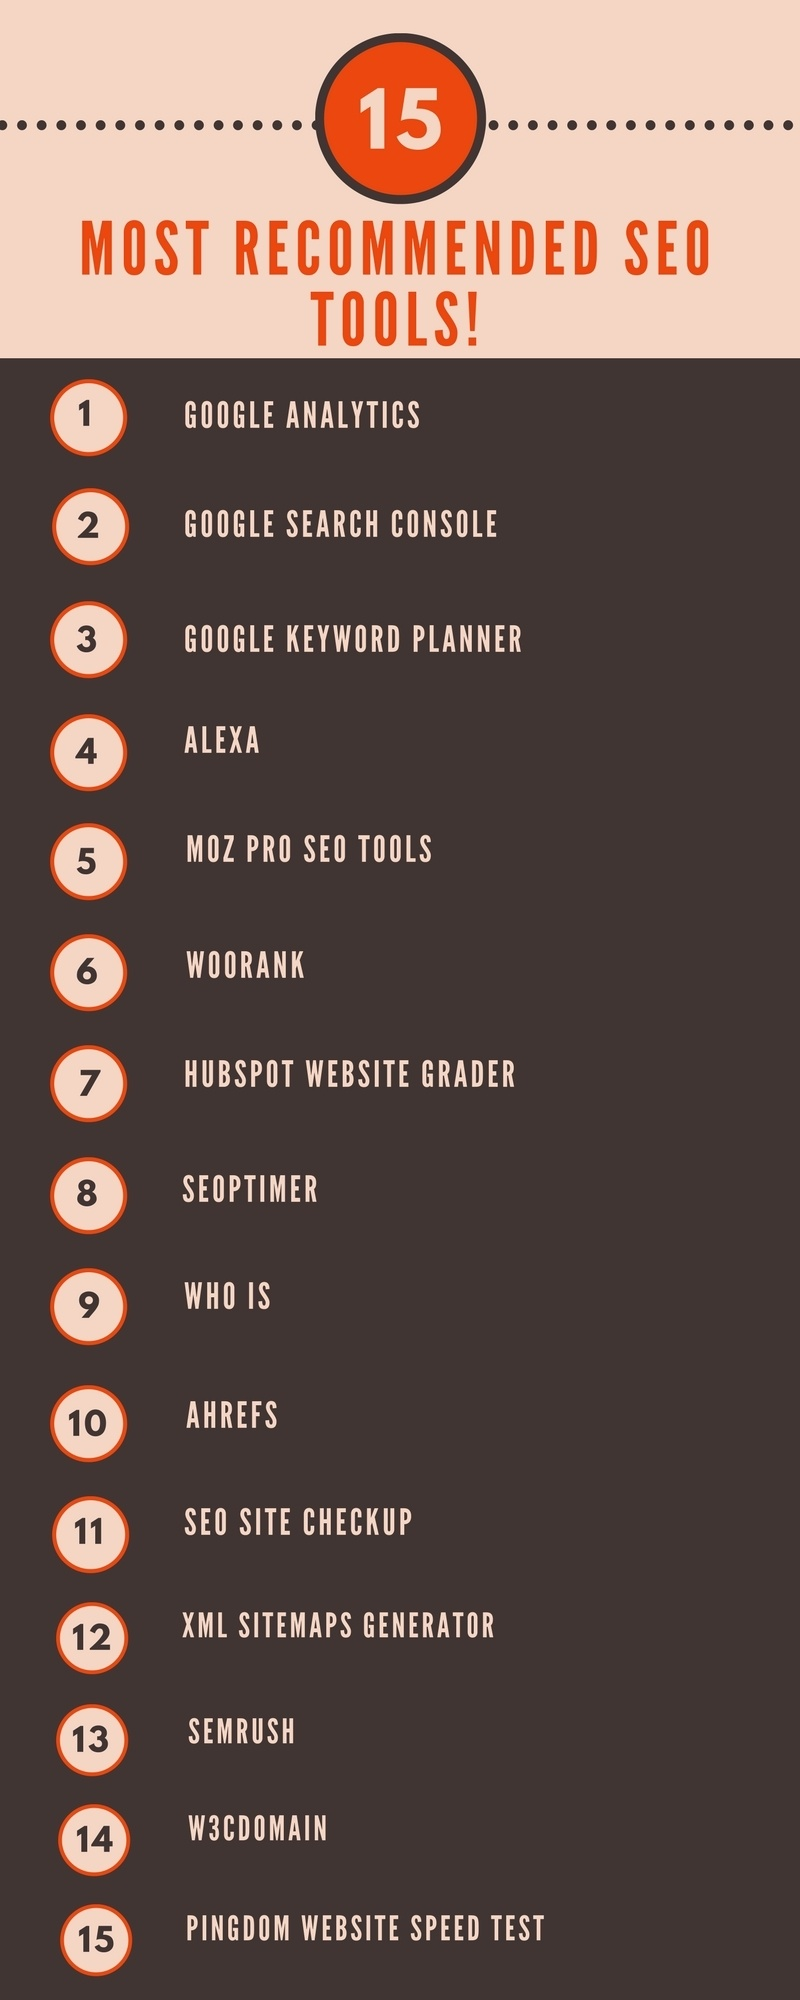 Top 15 Most Recommended SEO Tools Infographic